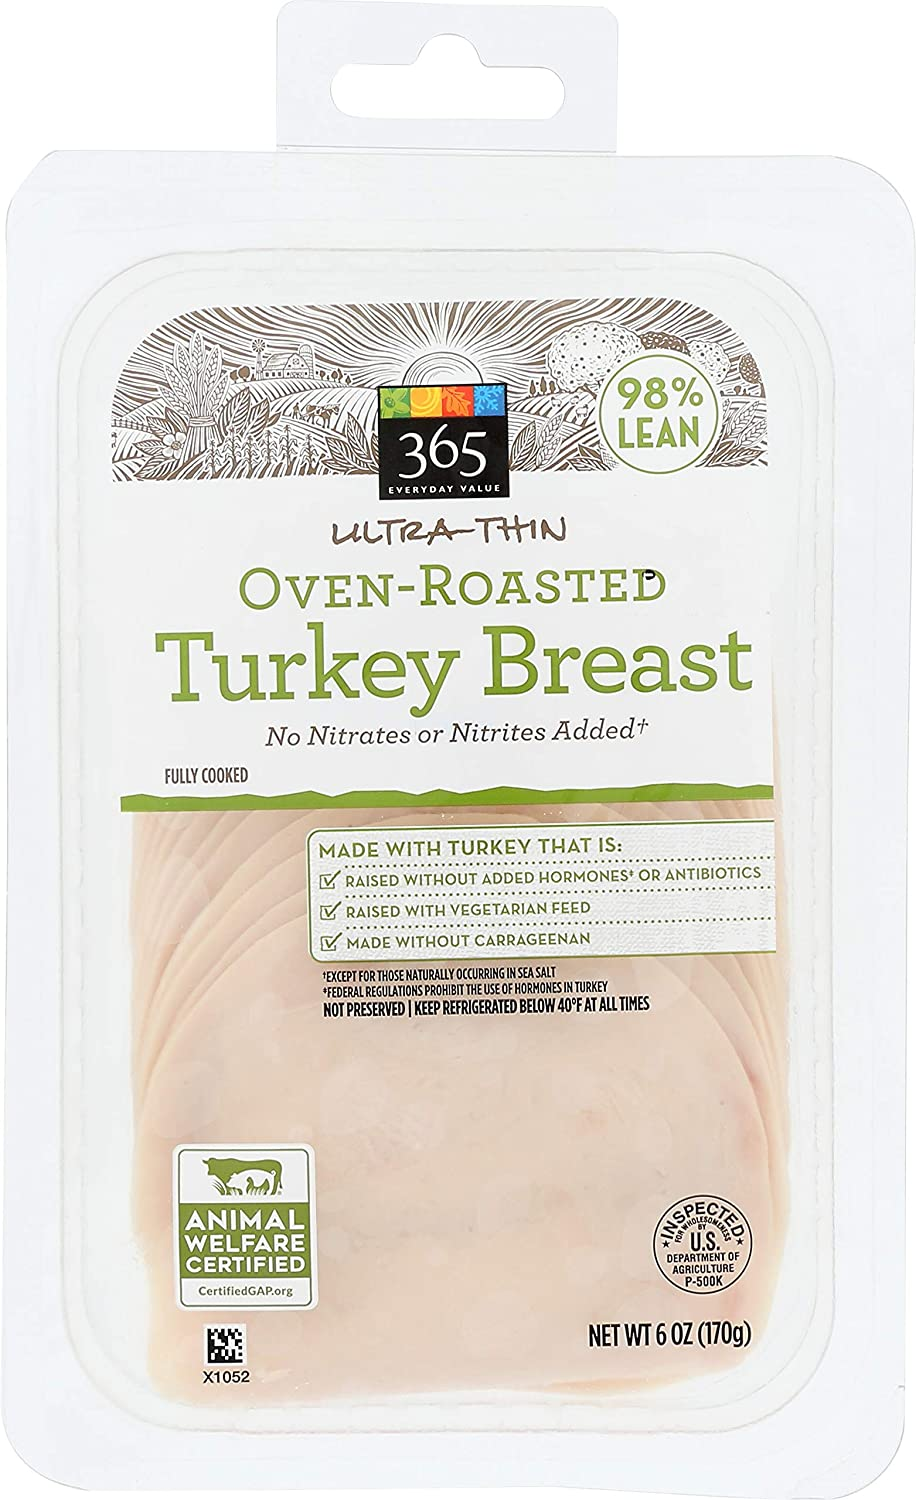 365 Everyday Value, Oven-Roasted Turkey Breast Ultra-Thin Deli Slices, 98% Lean, 6 oz